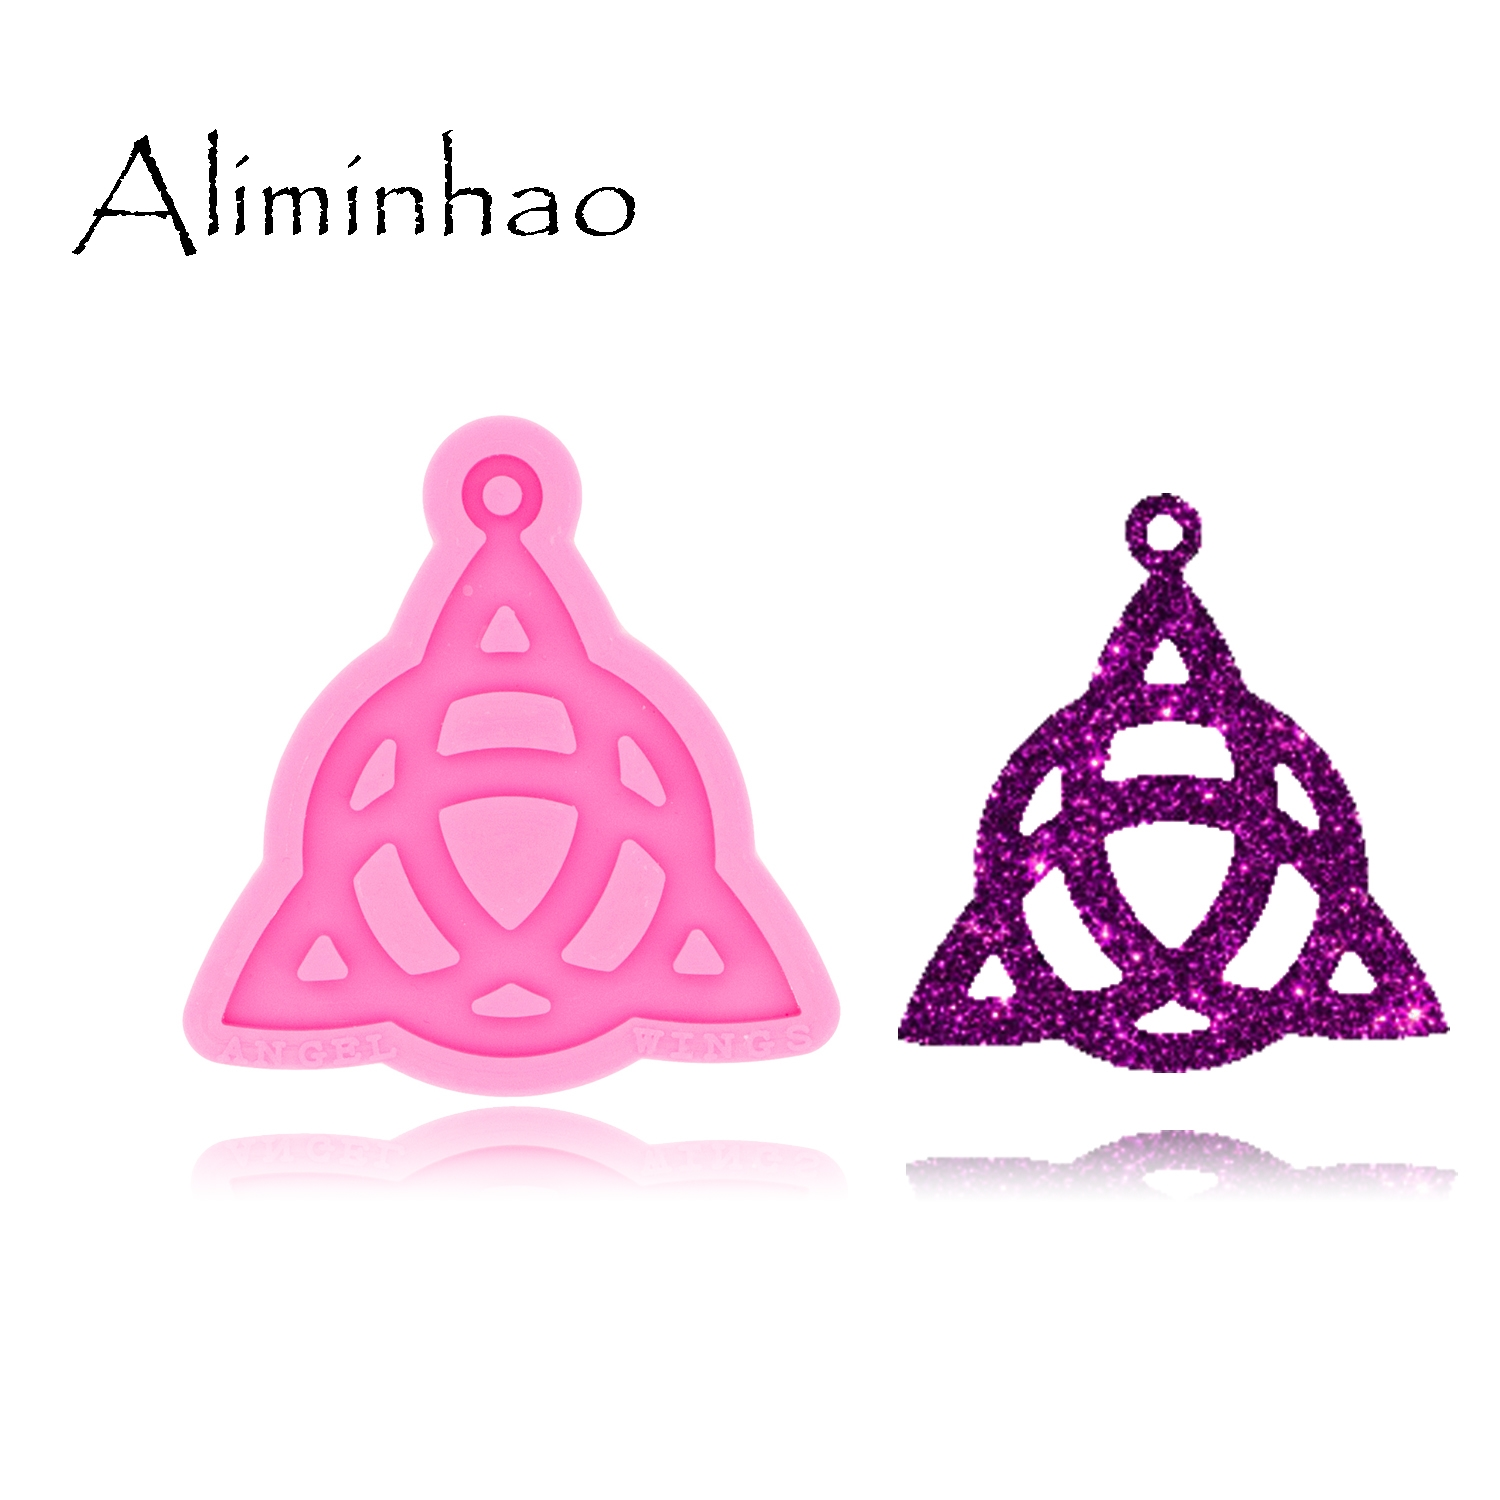 DY0446 Shiny Glossy Necklace Jewelry Epoxy Mould Crafting Keychain Silicon Resin Silicone Mold